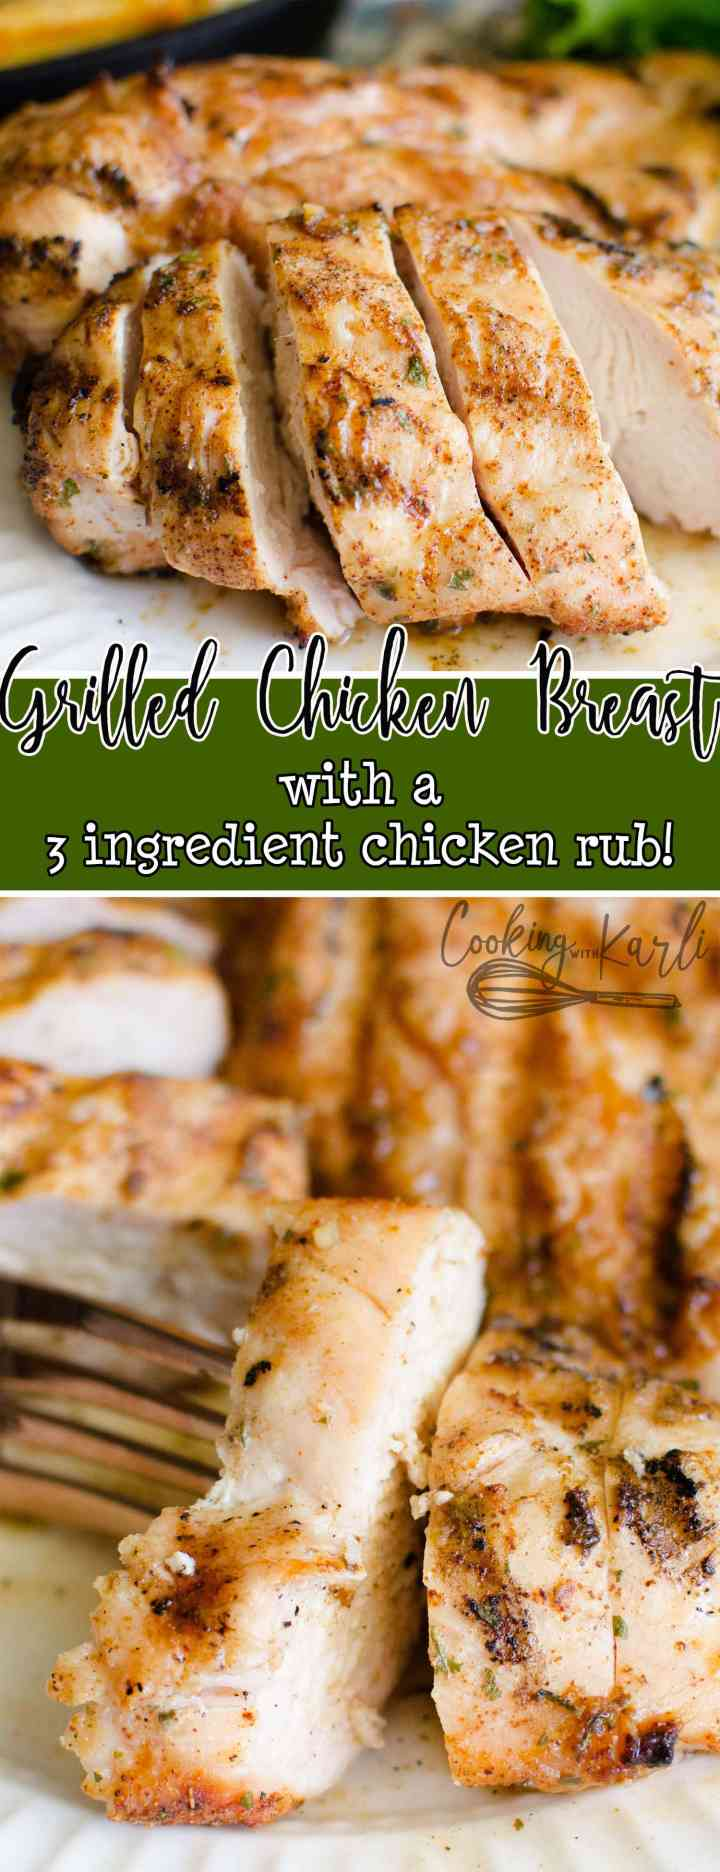 Grilled Chicken with a 3 Ingredient Homemade Rub is fast, easy and delicious. This all-purpose Chicken and Rub is great on it's own, in a salad or as a sandwich! The Rub is made with seasoning packets which makes it super easy and full of flavor. |Cooking with Karli| #chicken #grill #dryrub #rub #chickenrub #summer #grilledchicken